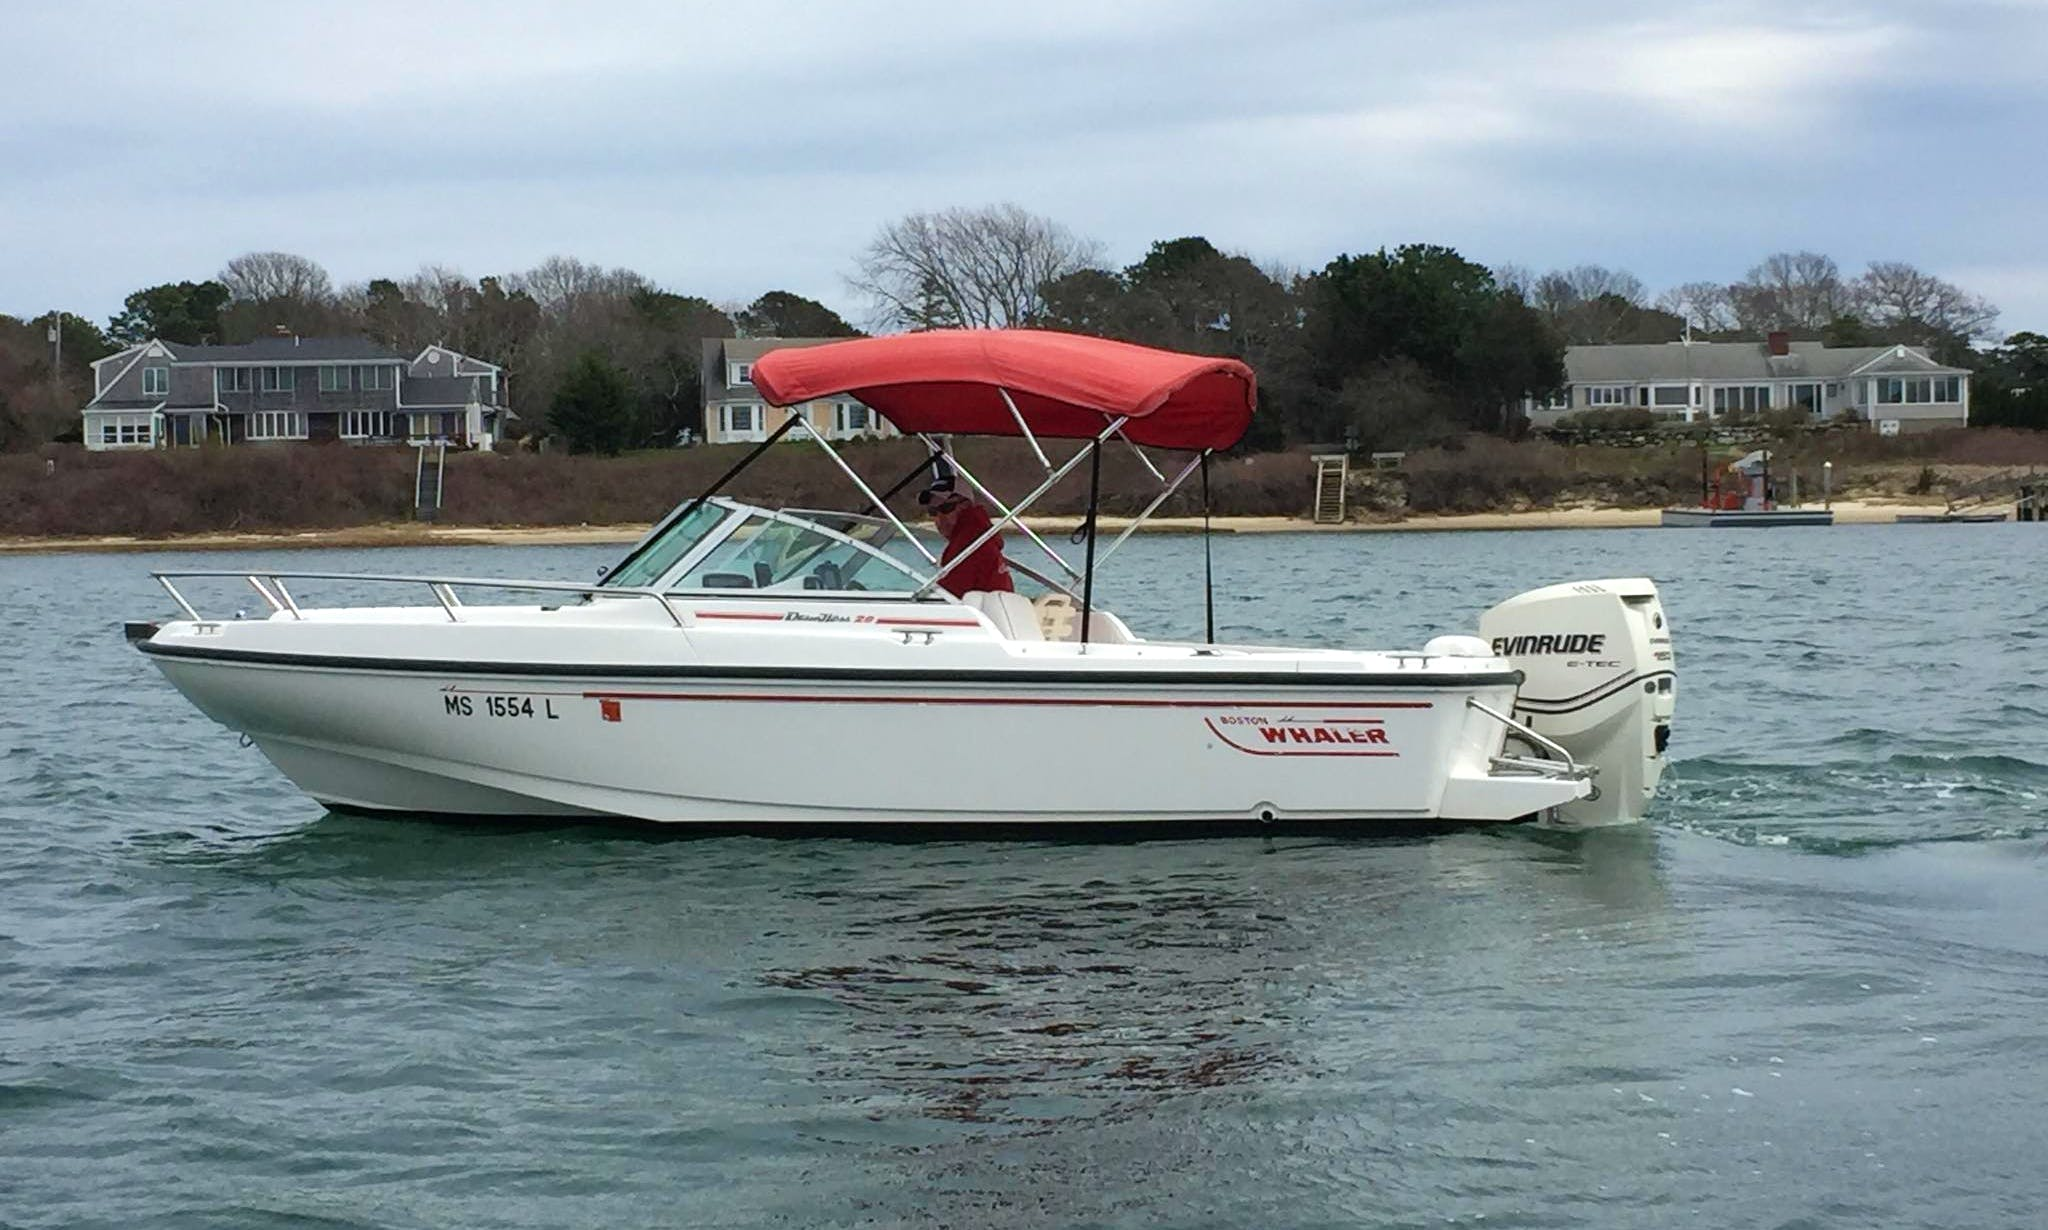 Rent 24' Boston Whaler Boat in Cape Cod